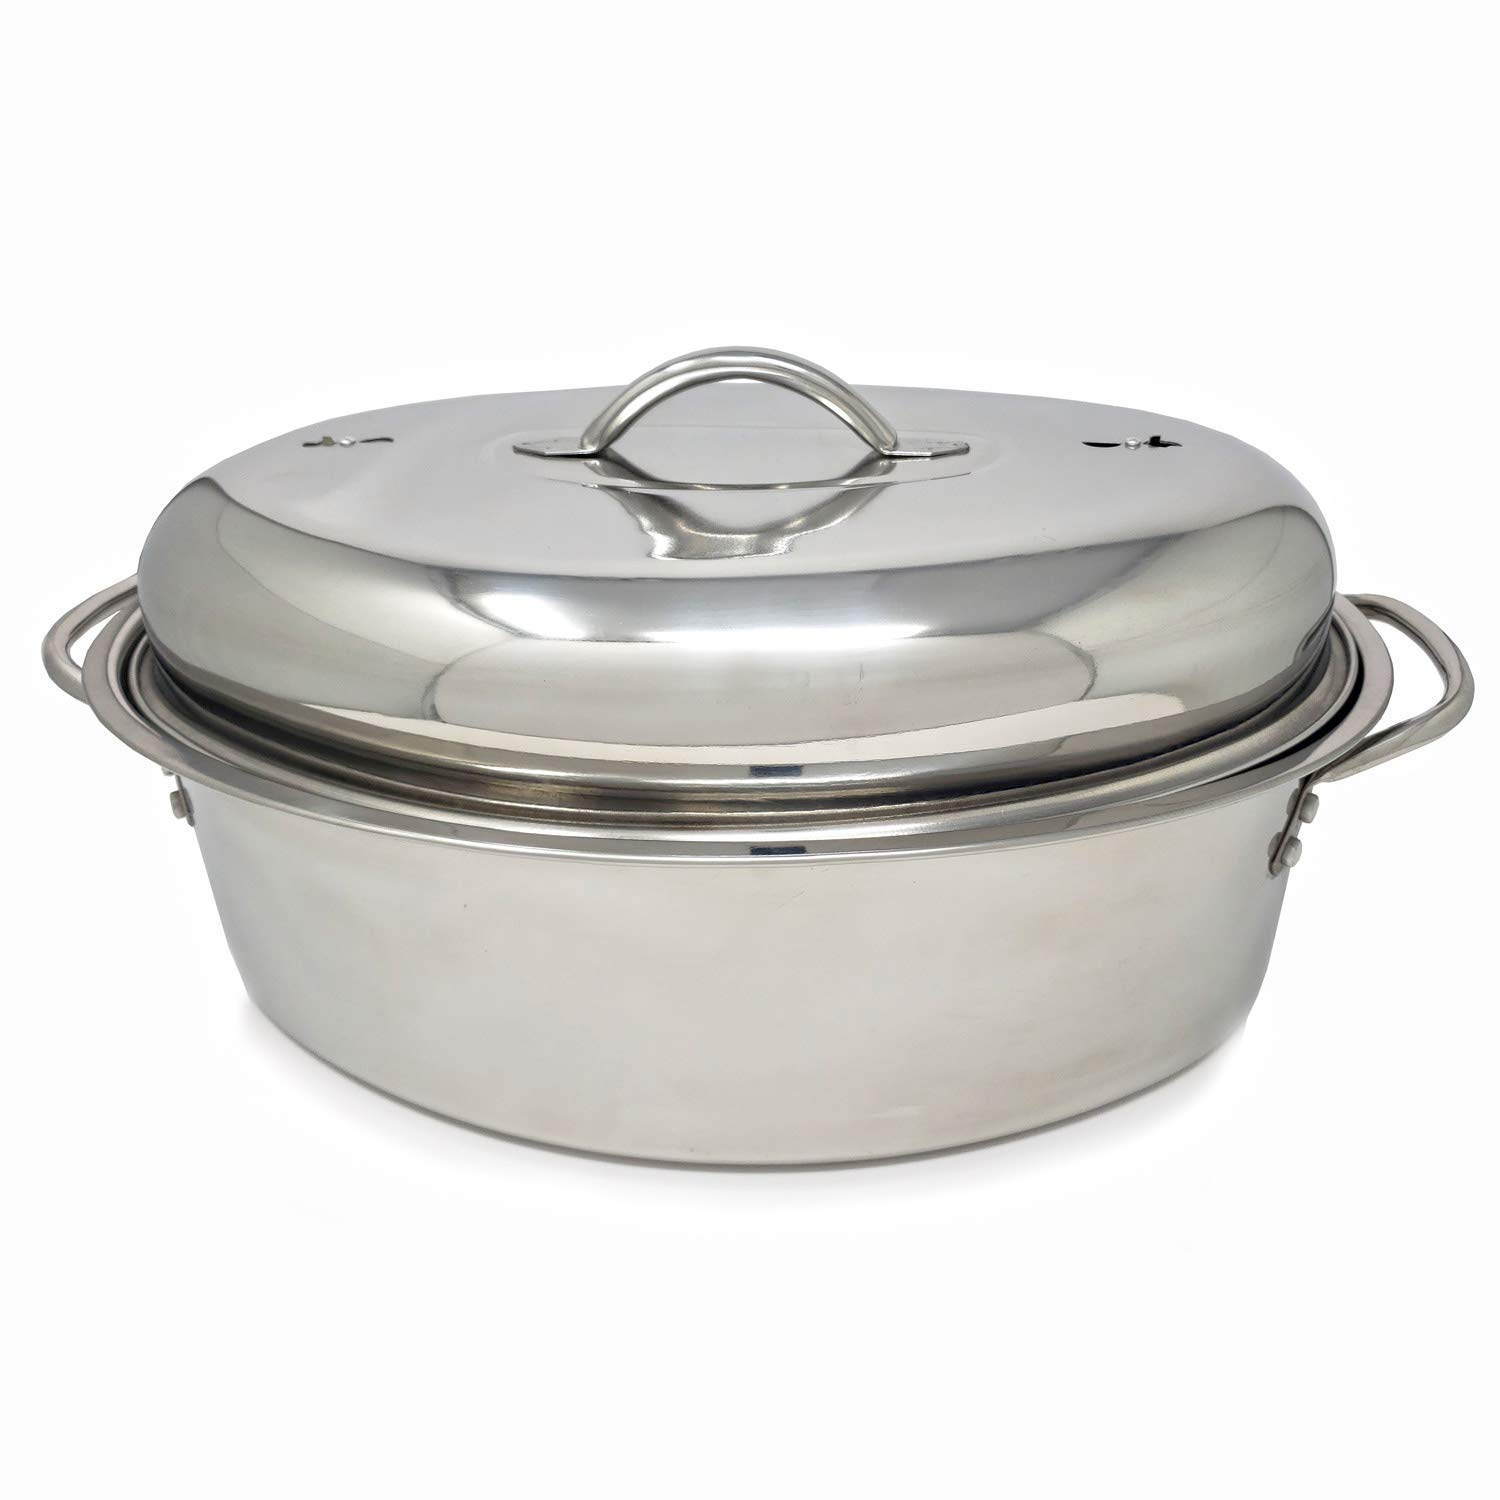 Stainless Steel Oval Lidded Roaster Pan Extra Large & Lightweight | With Induction Lid & Wire Rack | Multi-Purpose Oven Cookware High Dome | Meat Joints Chicken Vegetables 9.5 Quart Capacity by LavoHome (Image #6)